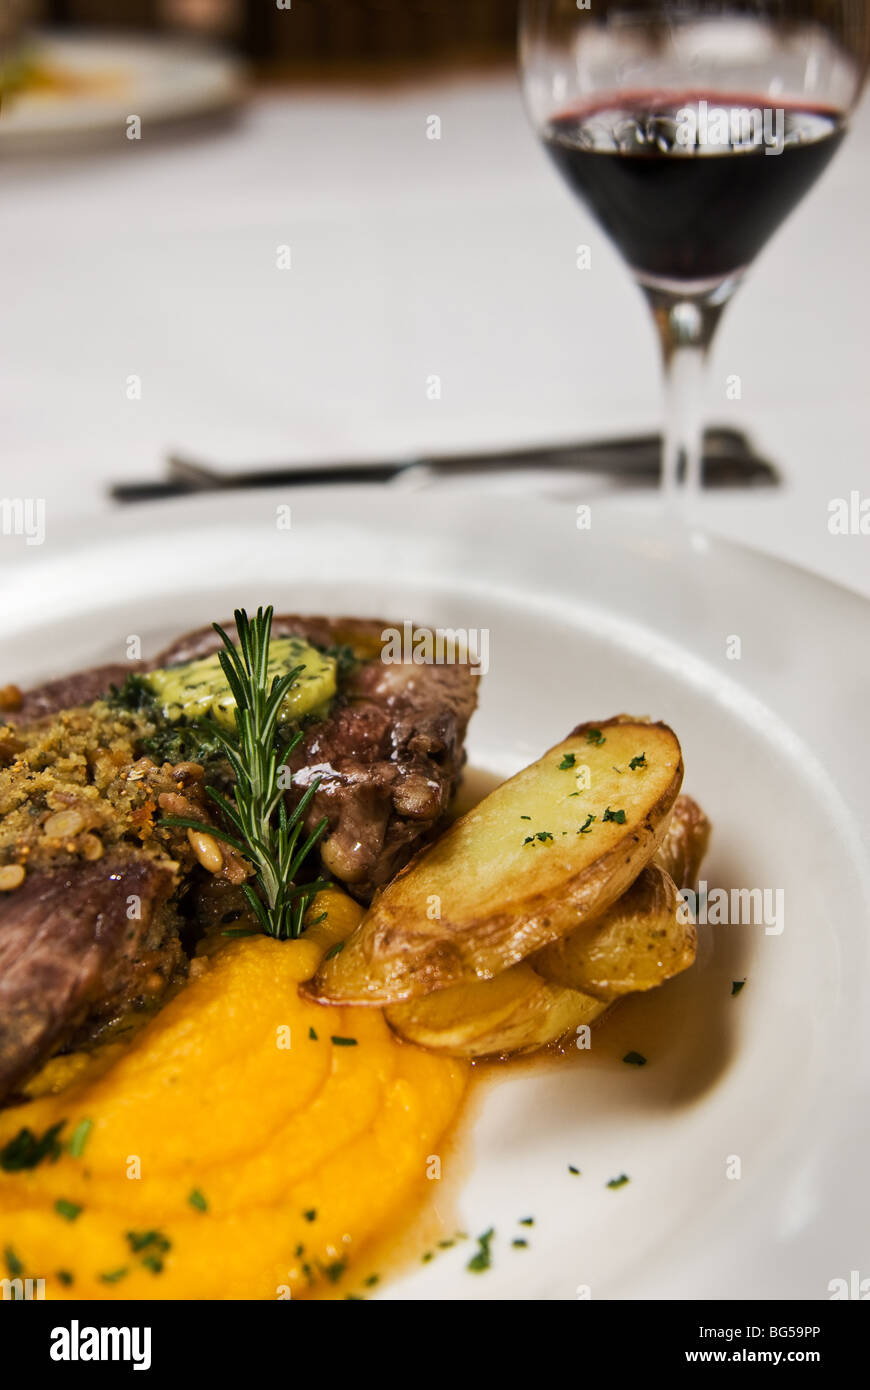 Meat, potato and pumpkin puree, served with red wine. - Stock Image